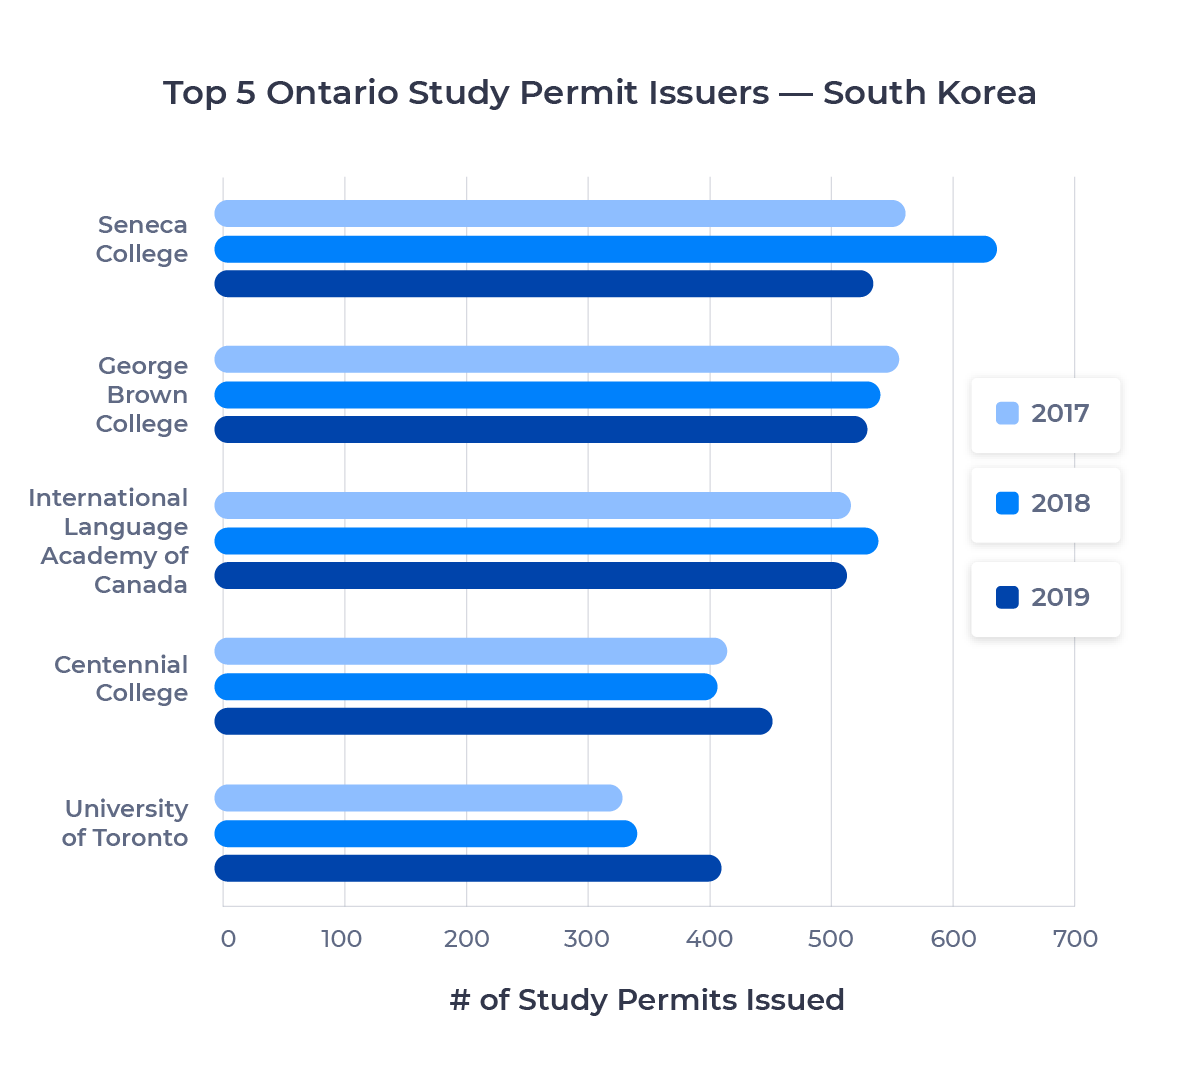 Bar chart showing the top five schools in Ontario for South Korean students by study permits issued. Described in detail below.